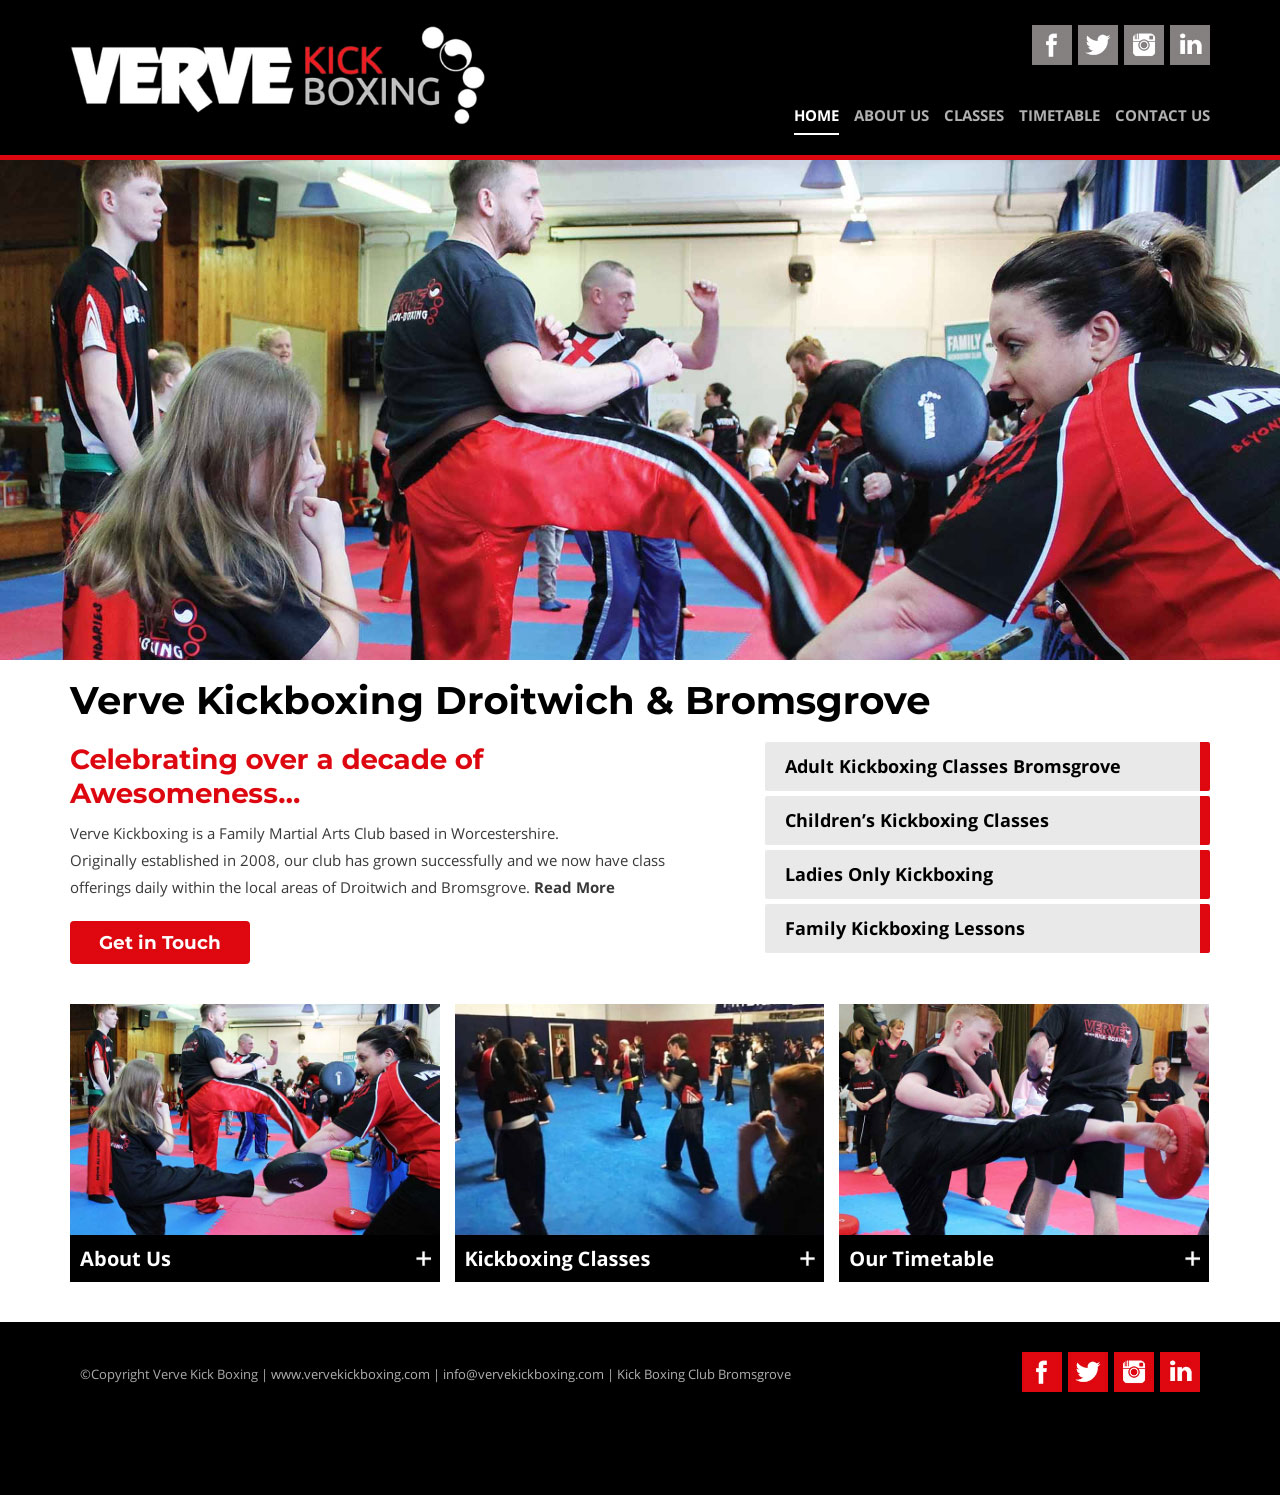 Verve Kickboxing Bromsgrove and Droitwich